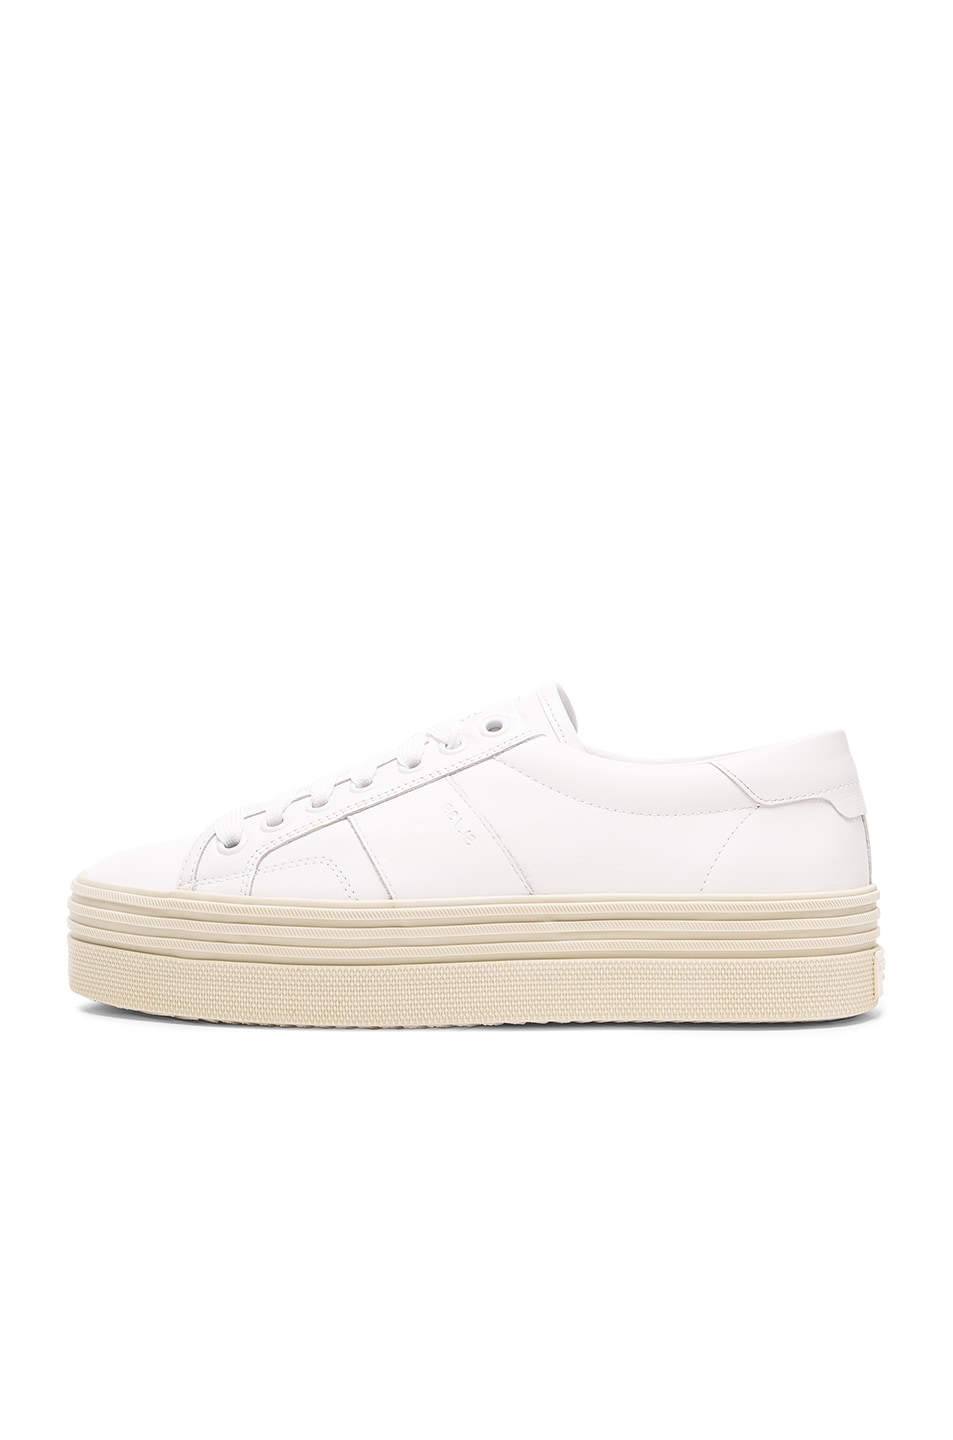 Image 5 of Saint Laurent Leather Court Classic Platform Sneakers in Off White